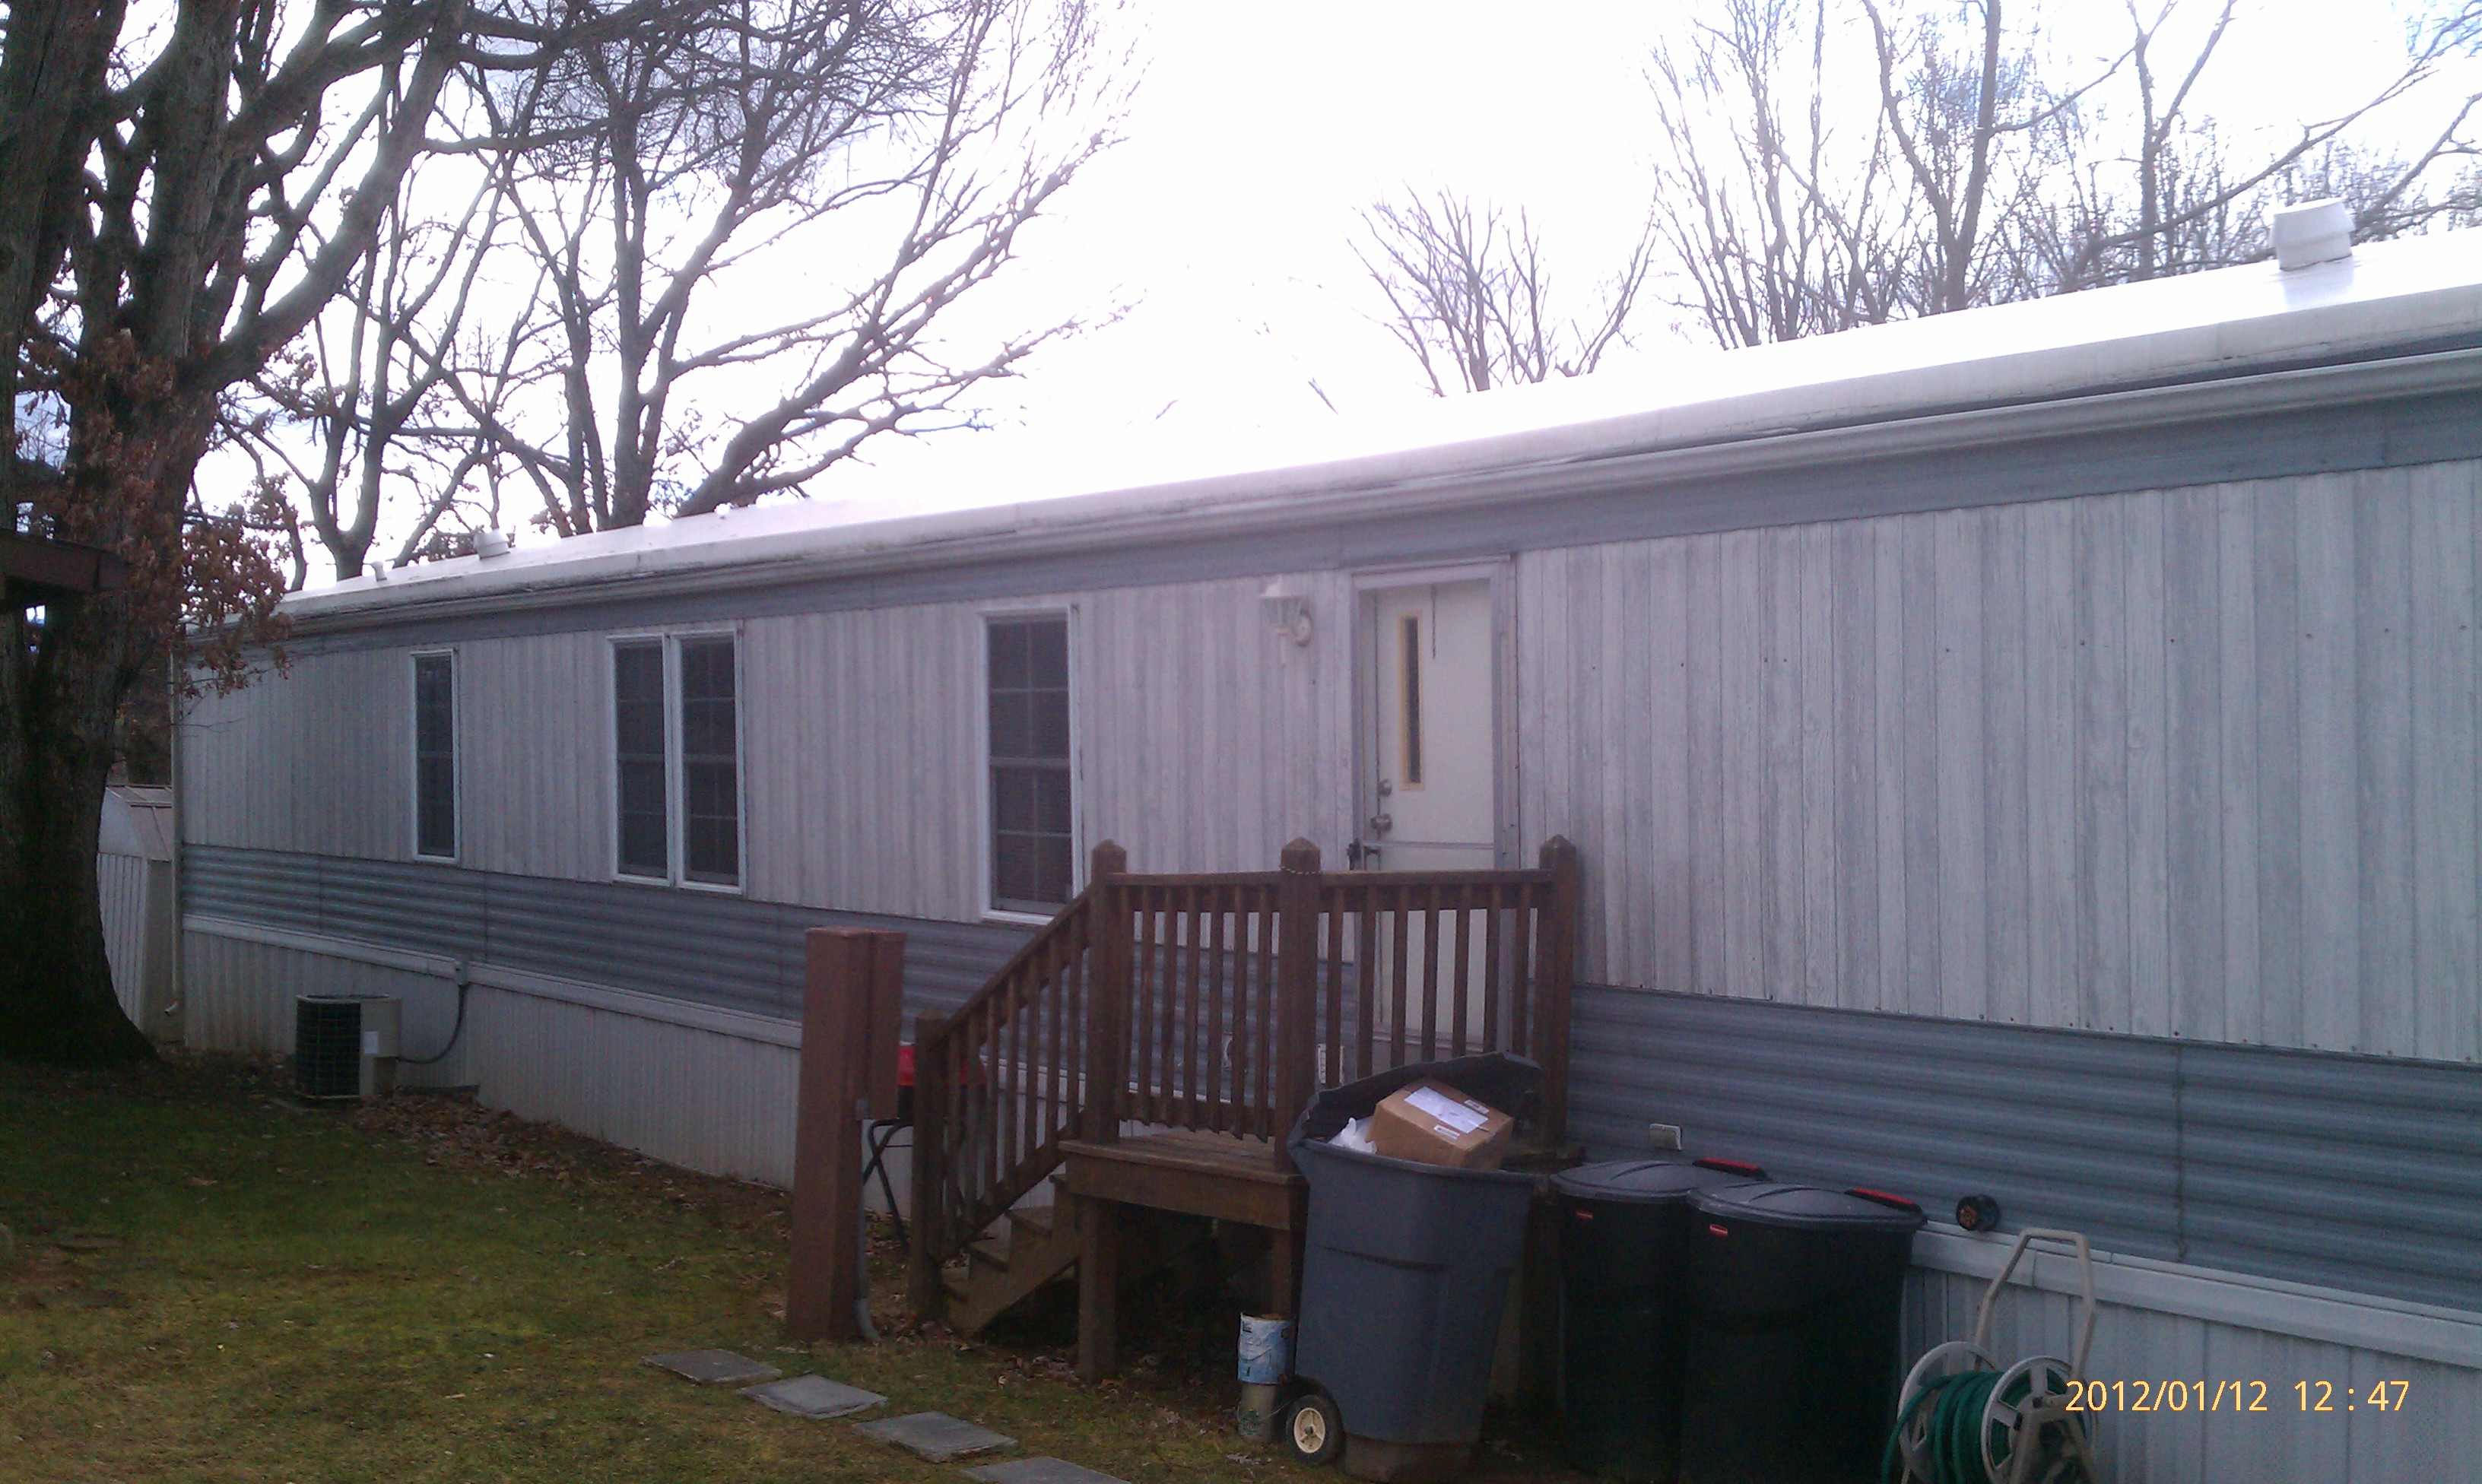 73 easy living mobile home park winchester va 617 for Affordable furniture va winchester va